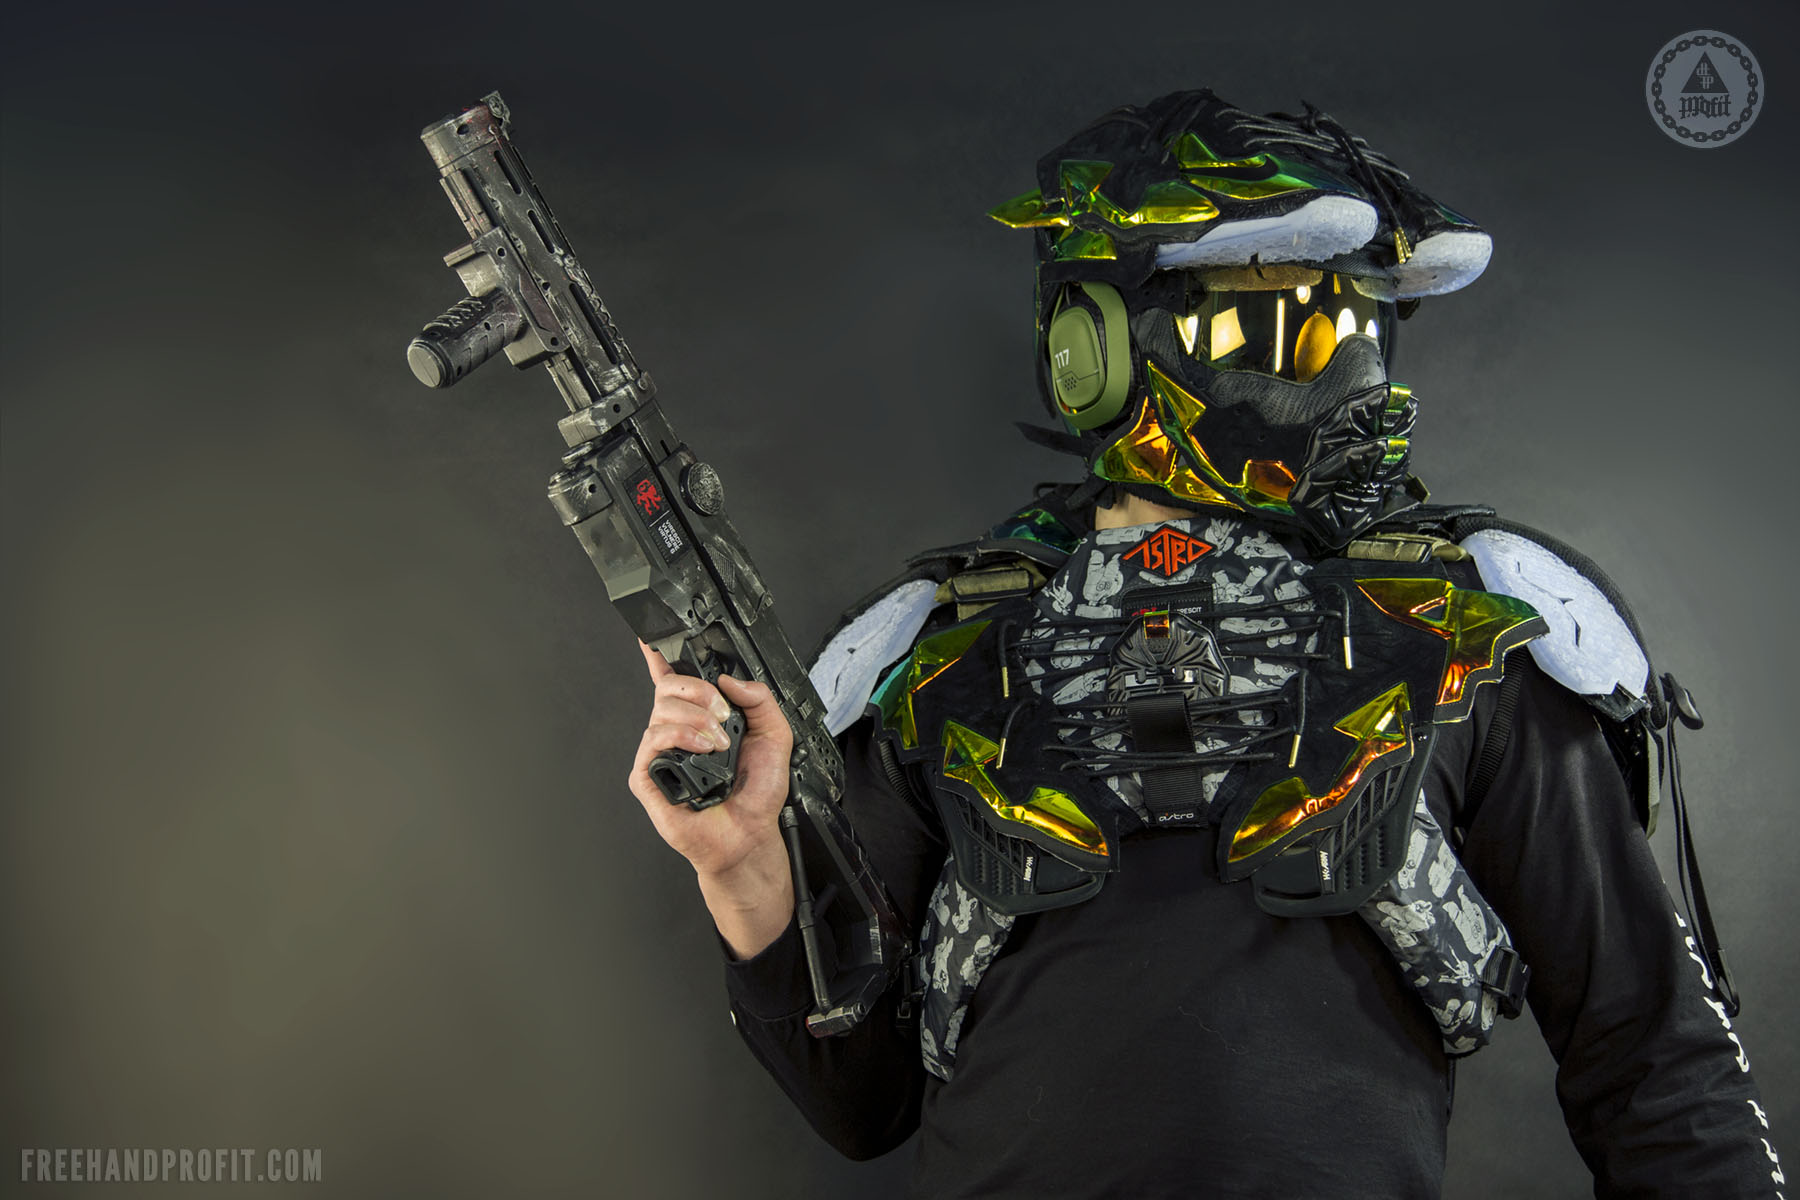 Best Motorcycle Armor >> ASTRO Gaming x Freehand Profit: Master Chief Gaming Helmet ...